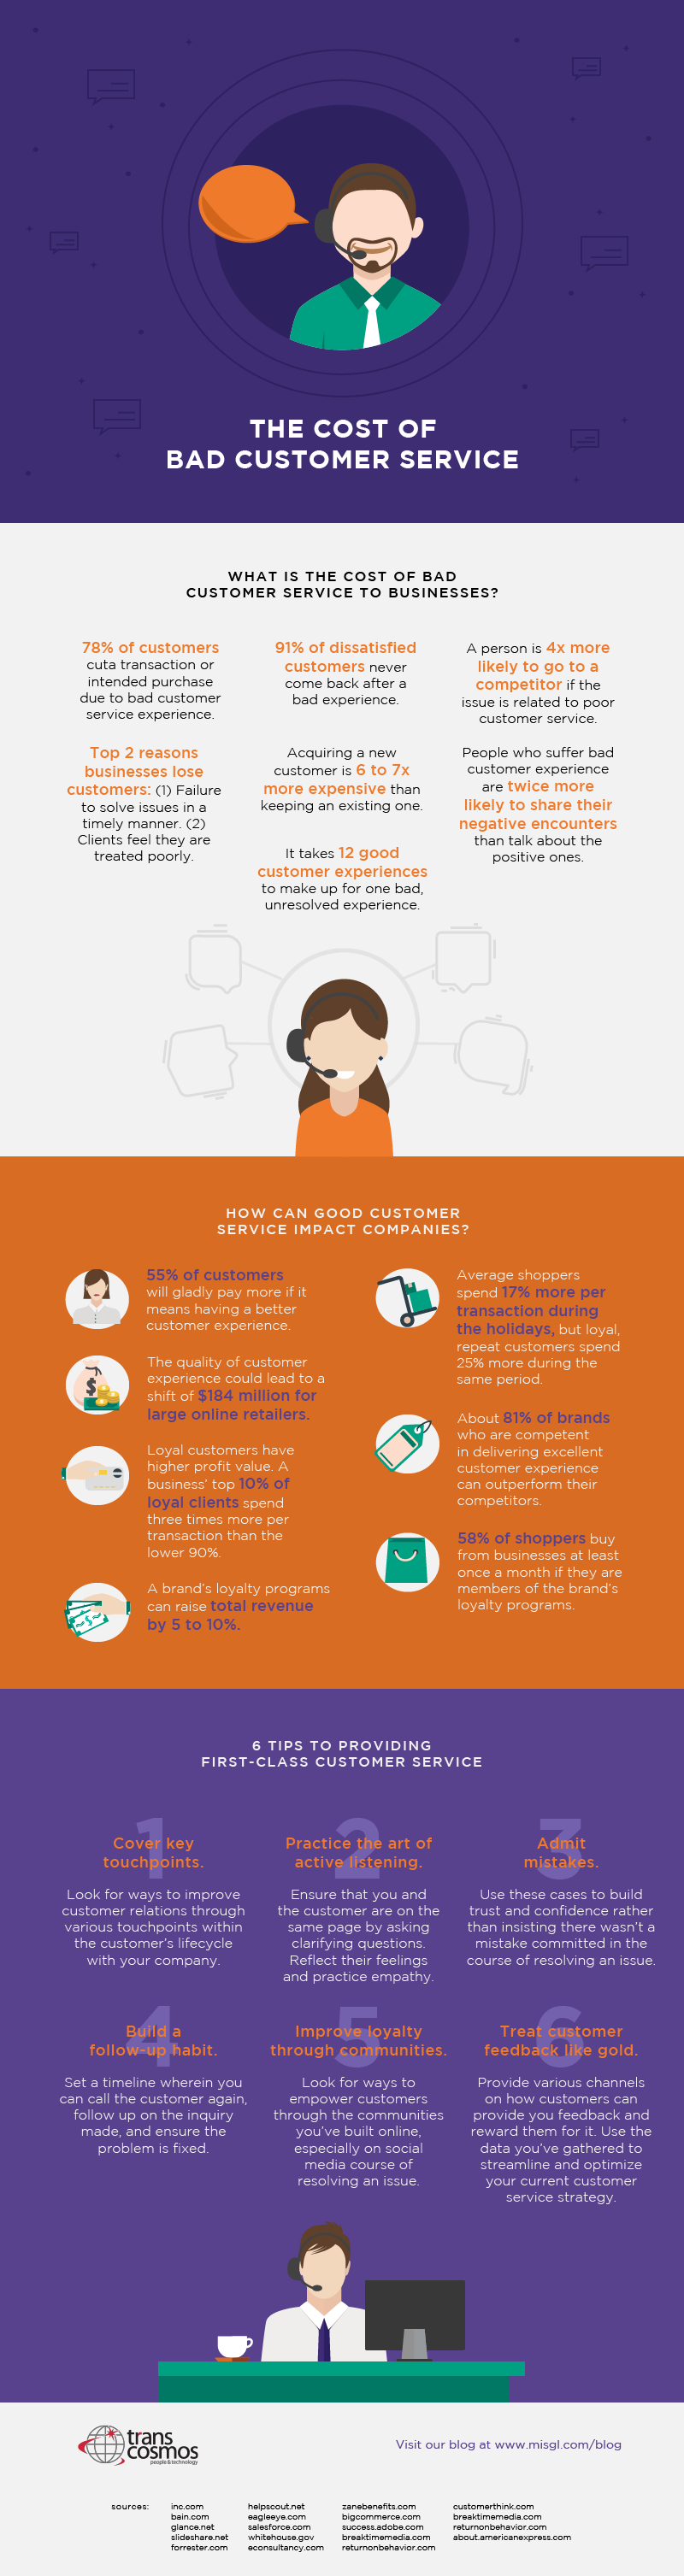 cost-of-bad-customer-service-infographic-4